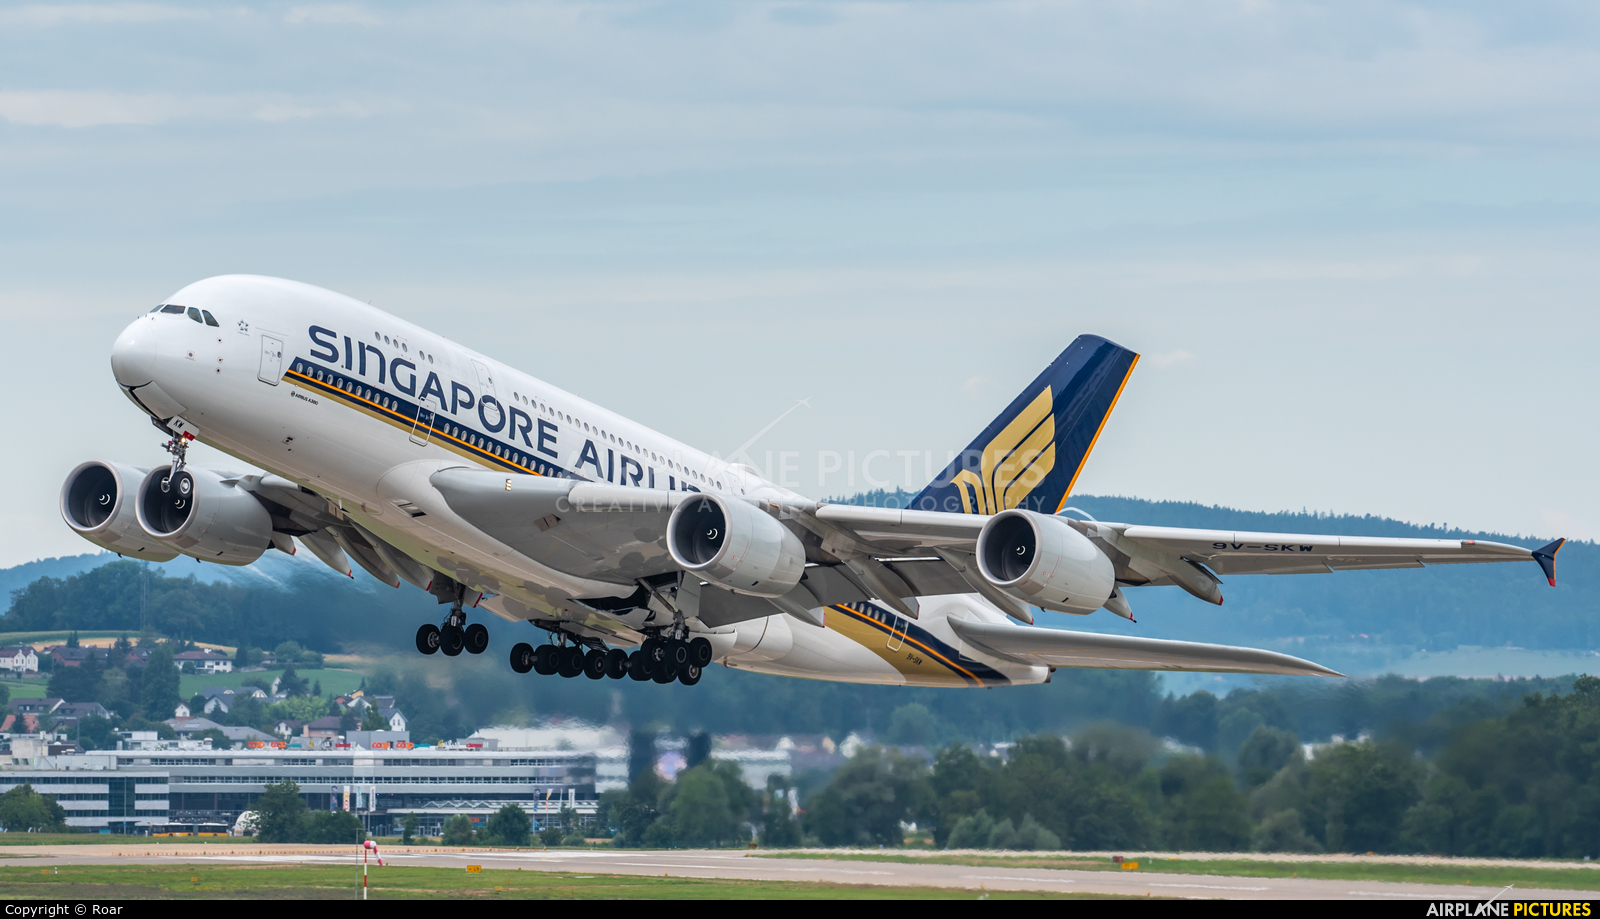 Singapore Airlines 9V-SKW aircraft at Zurich